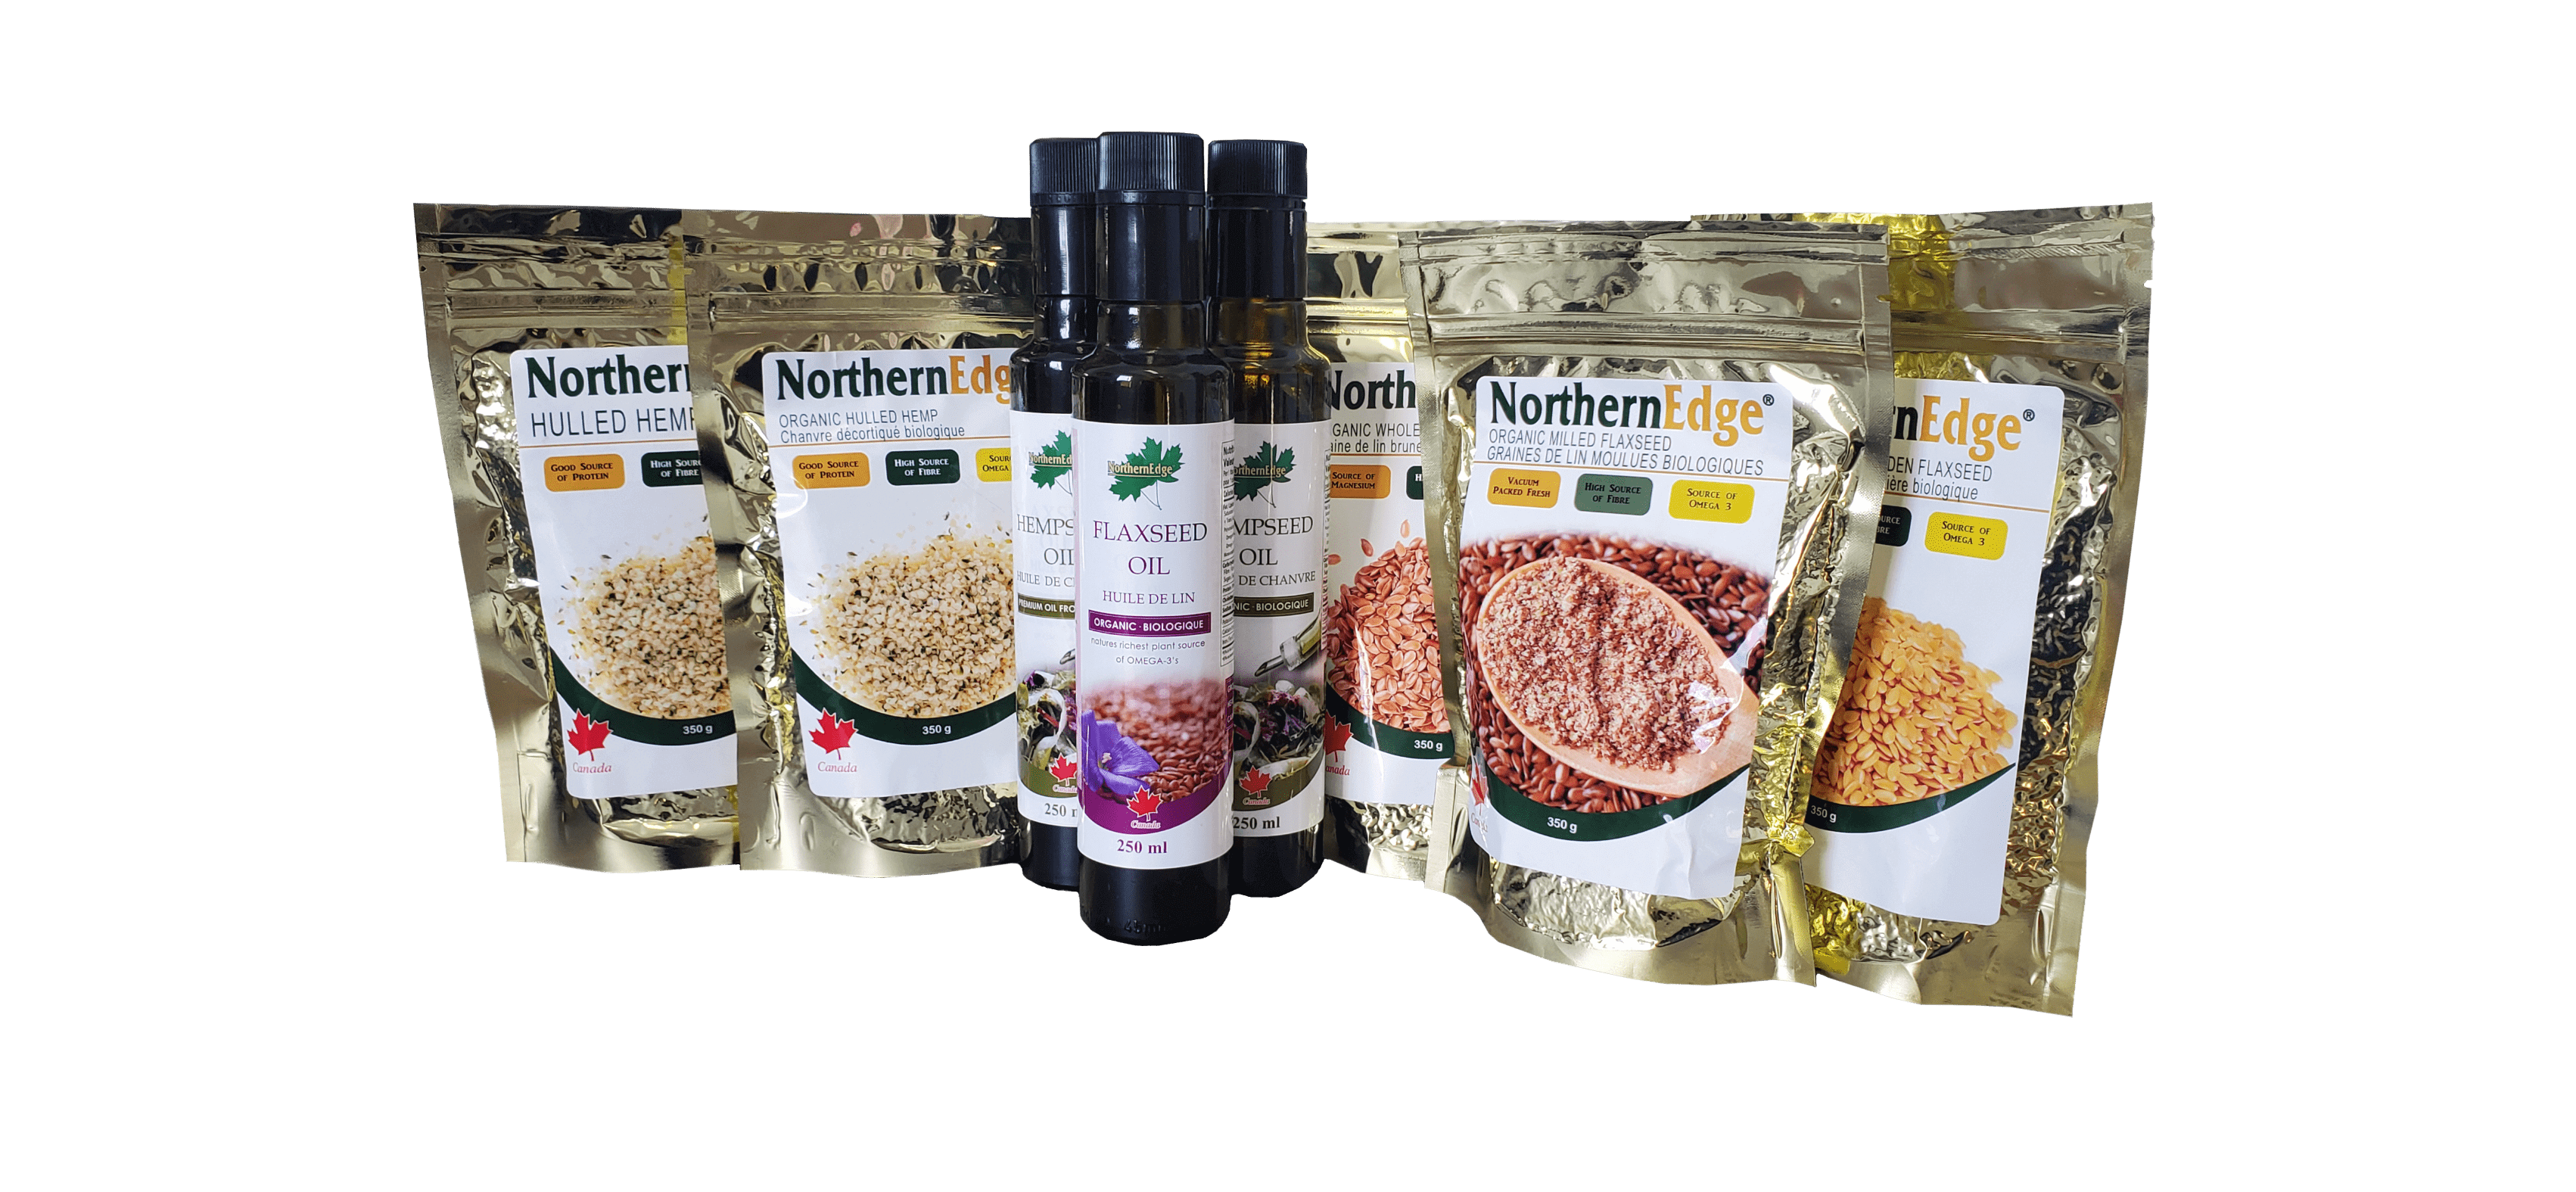 Northern Nutraceuticals Inc. Organic Hemp Seed and Flax Seed and flaxseed milled, whole, ground, hearts, and oil